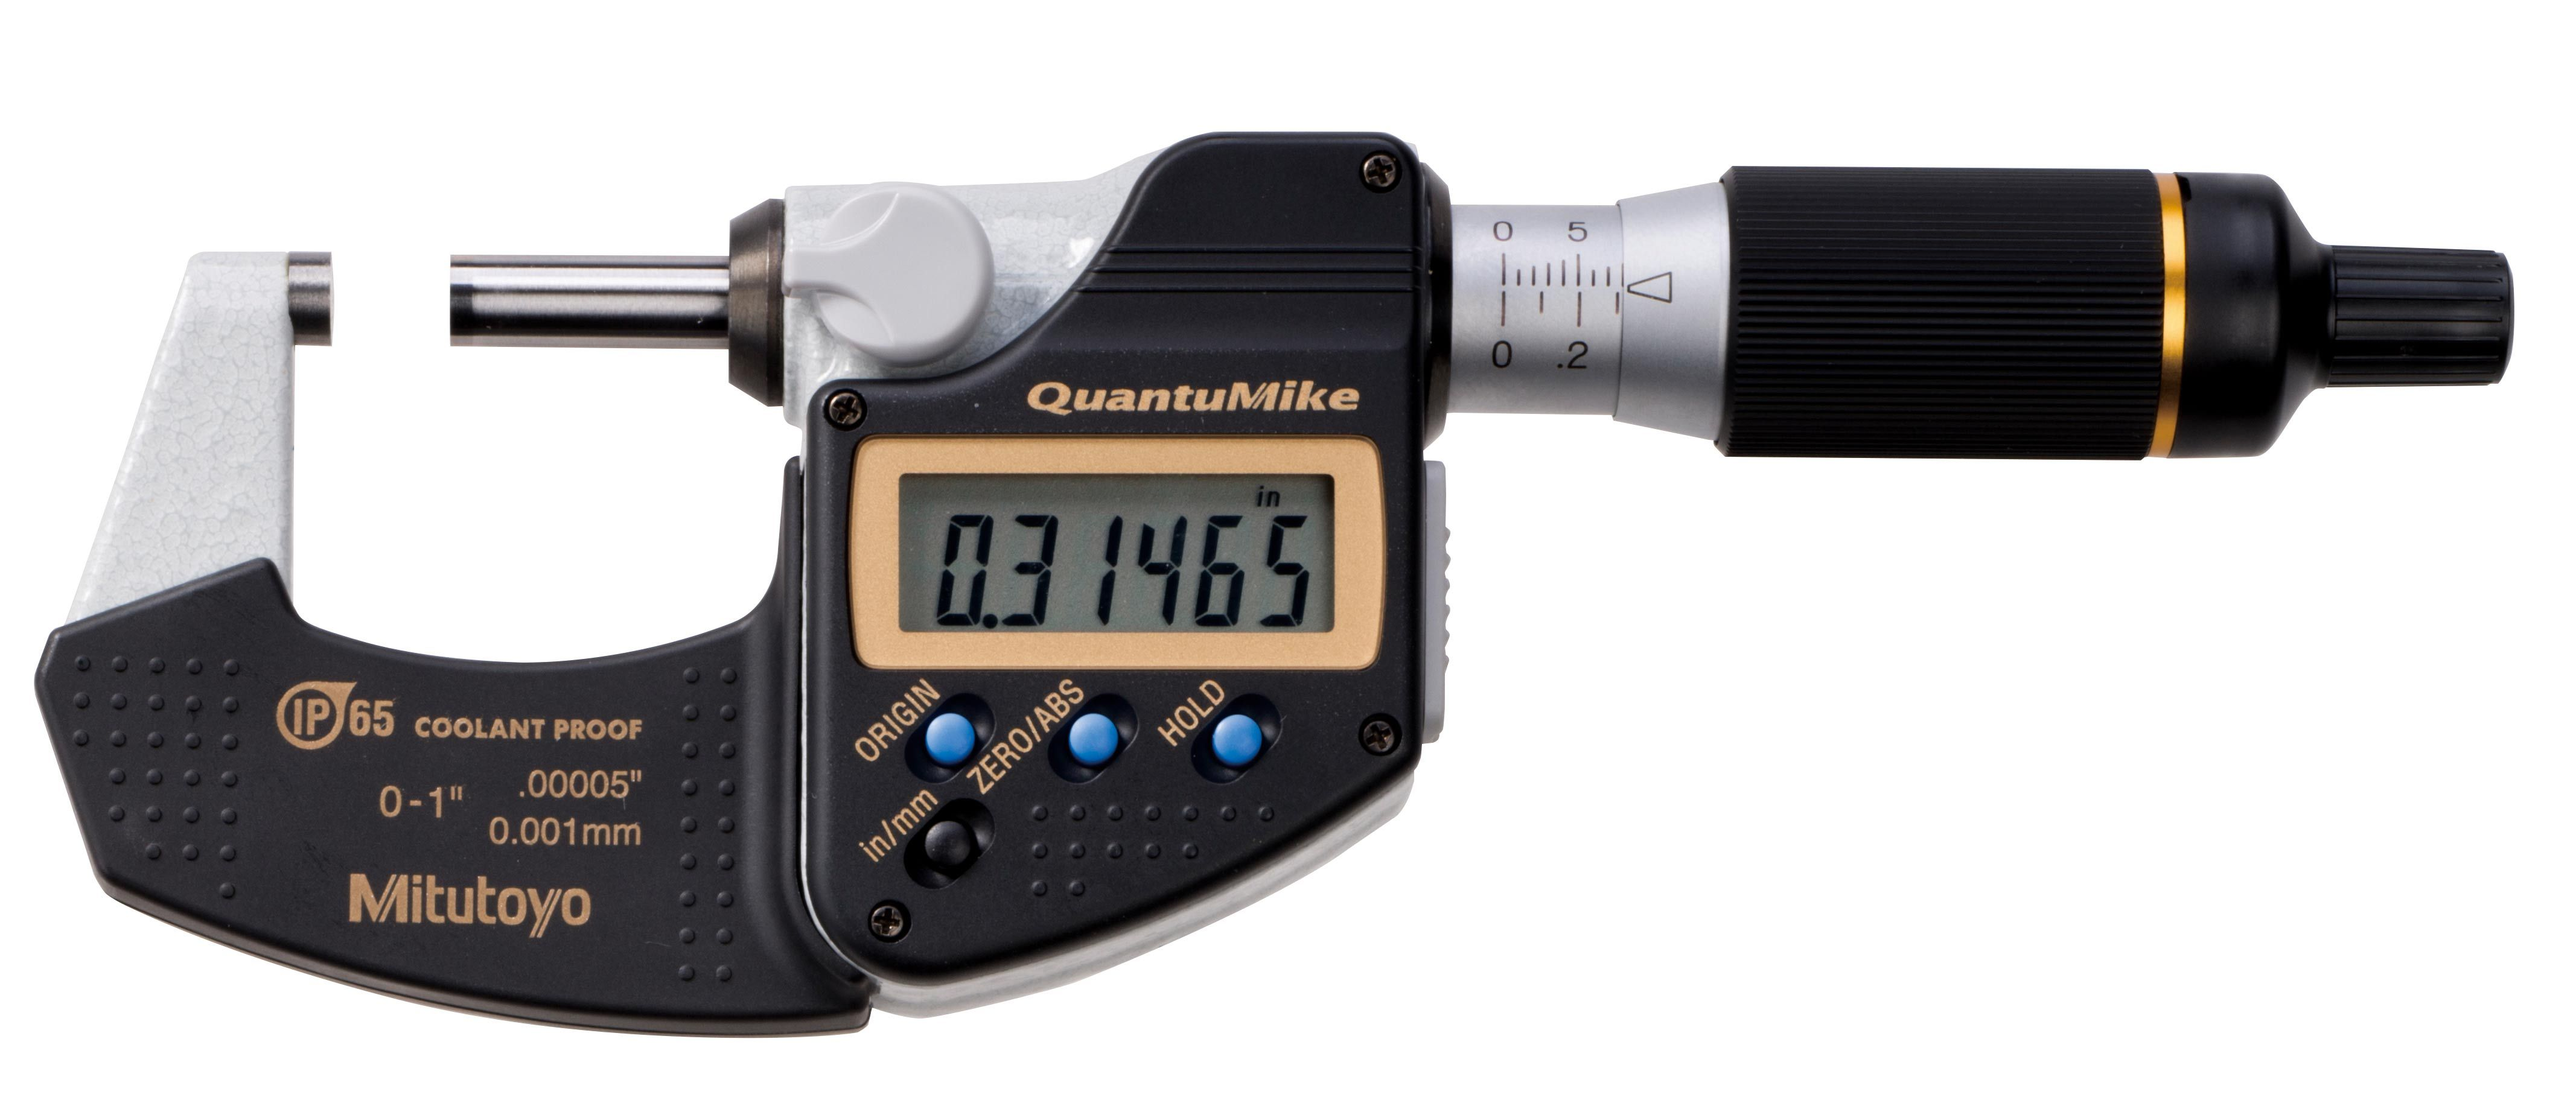 For Use with Coolant Proof... Mitutoyo Micrometer SPC Cable 2 mm Overall Length